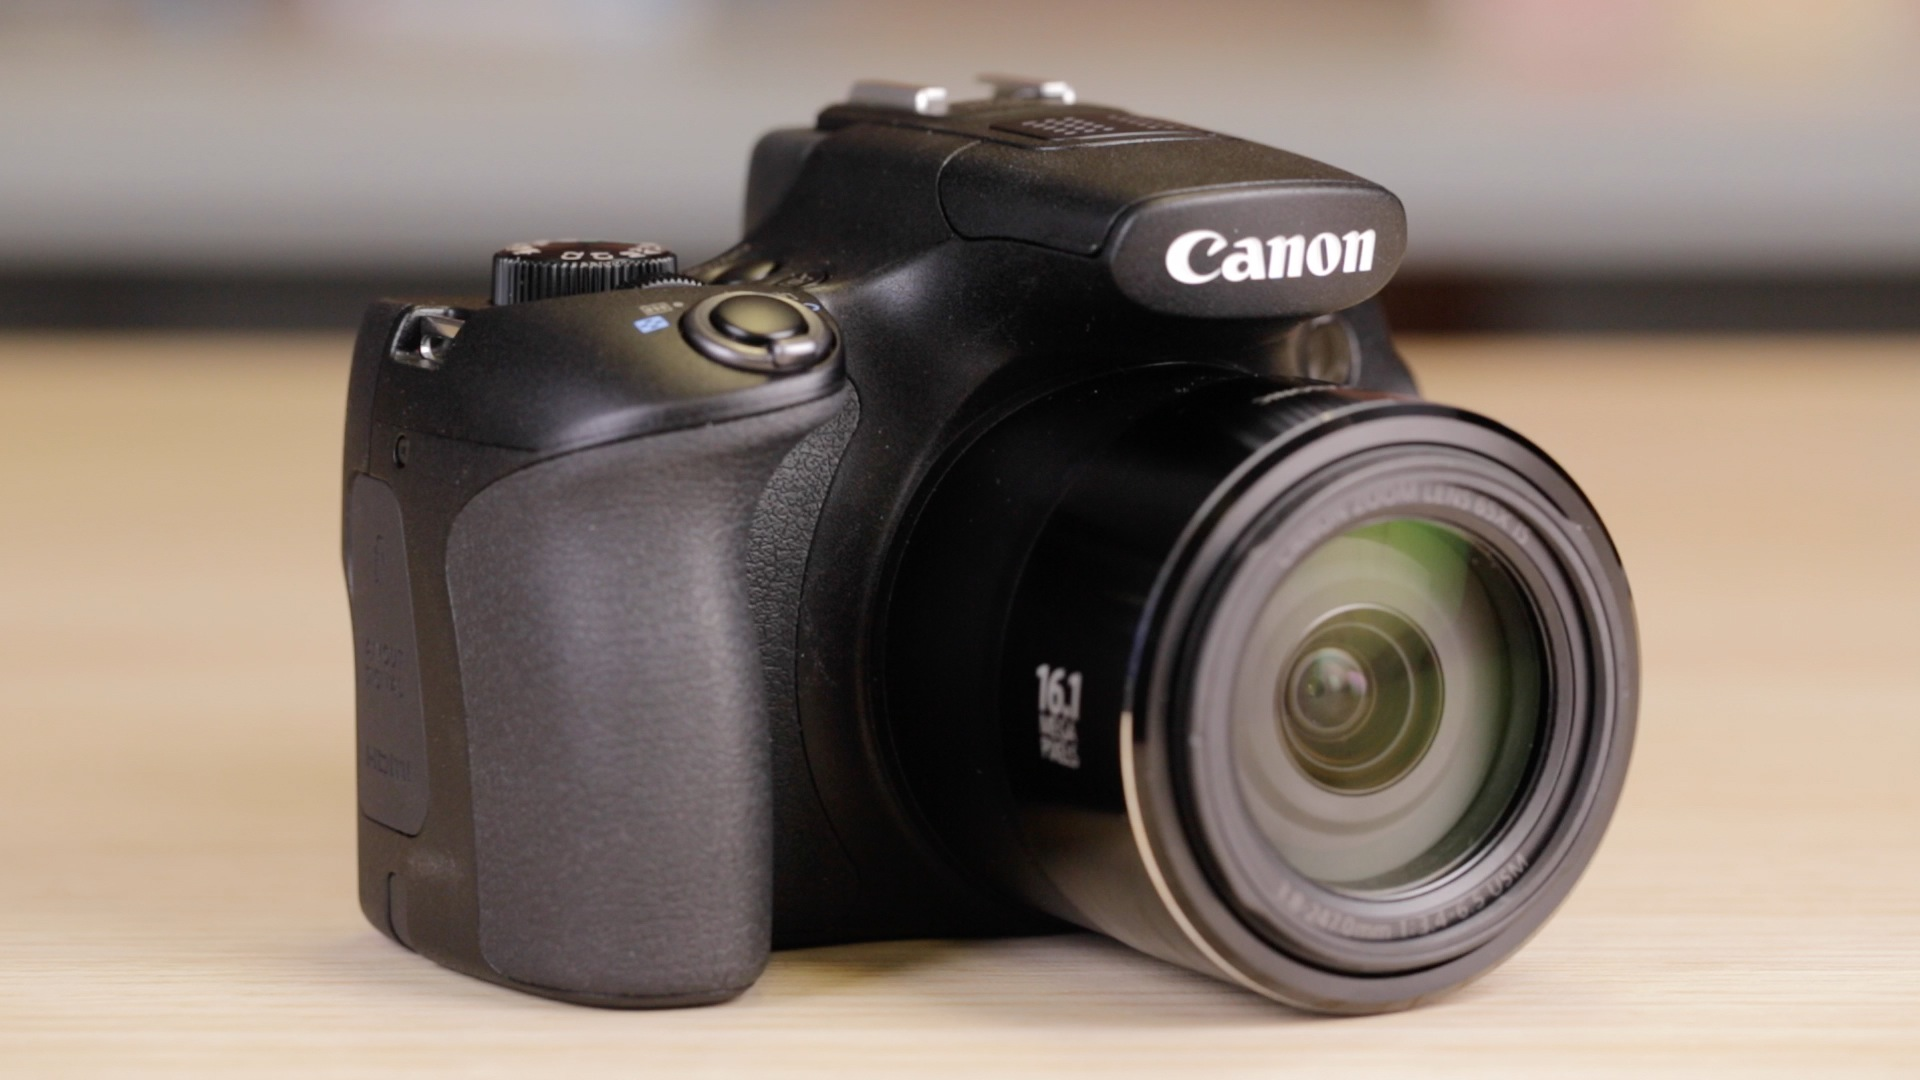 Video: Canon SX60 HS packs all the zoom you can handle